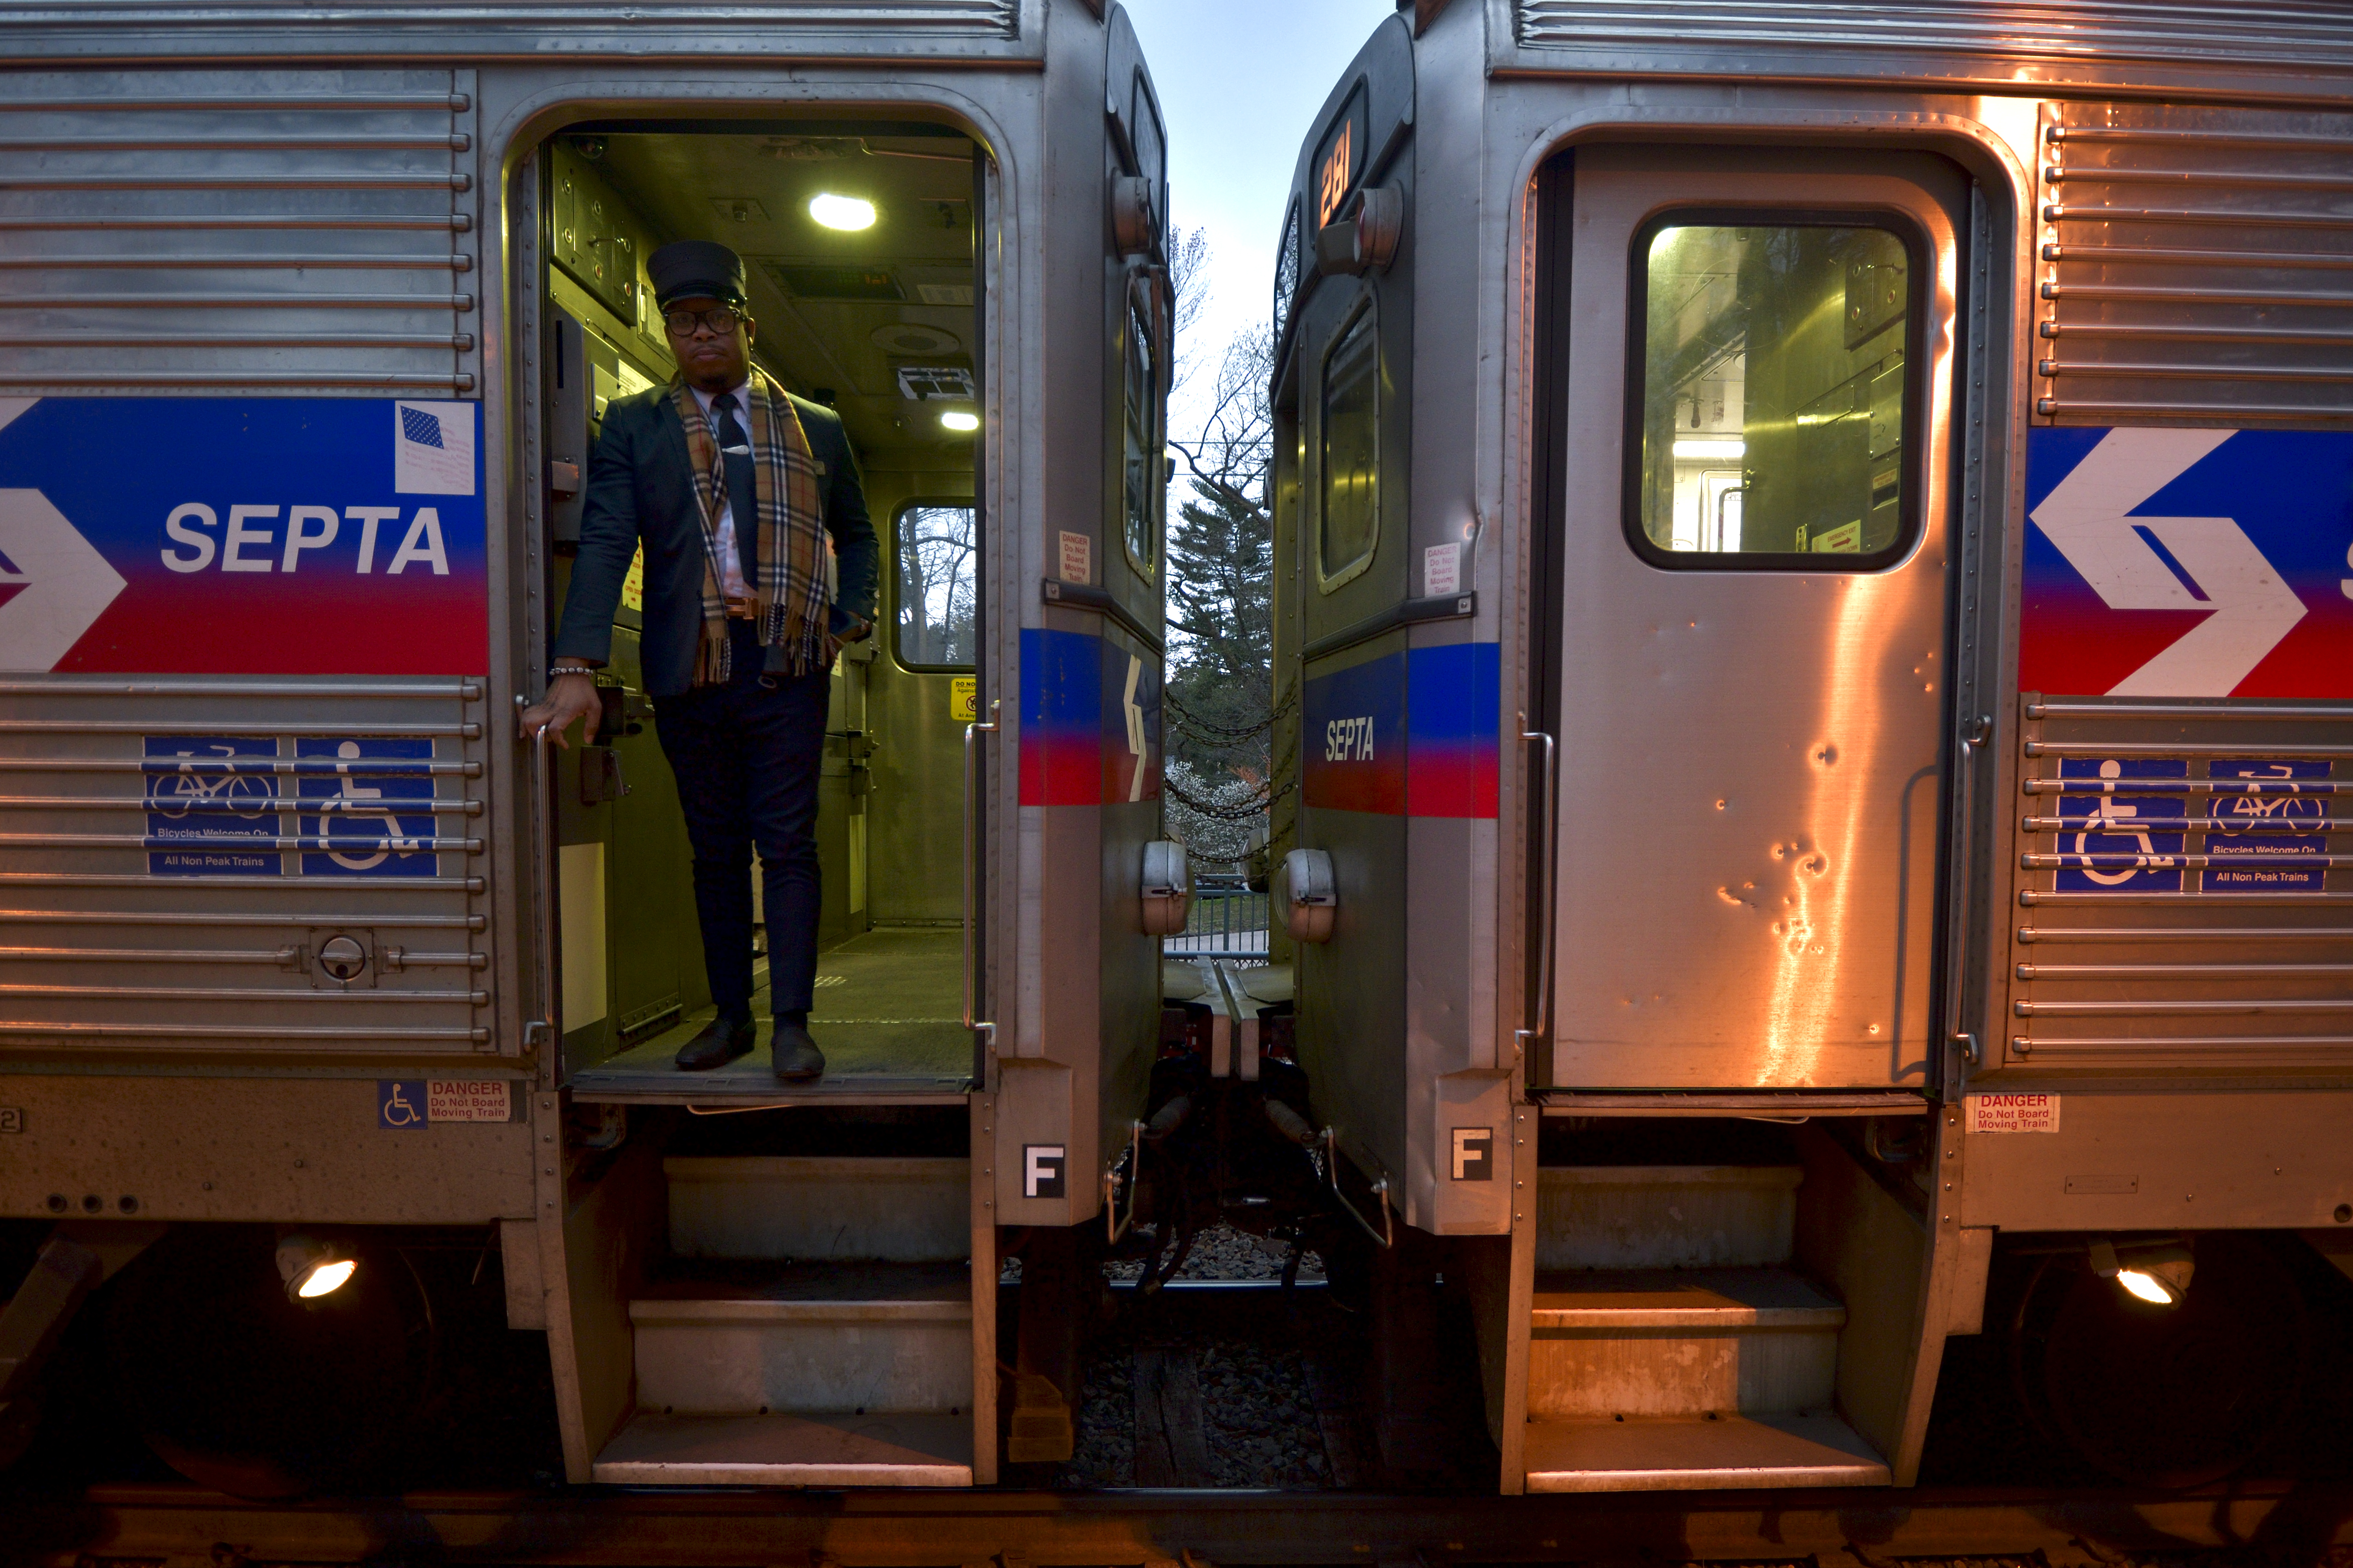 'Horrific': Woman raped on Philadelphia train while bystanders did nothing, police say